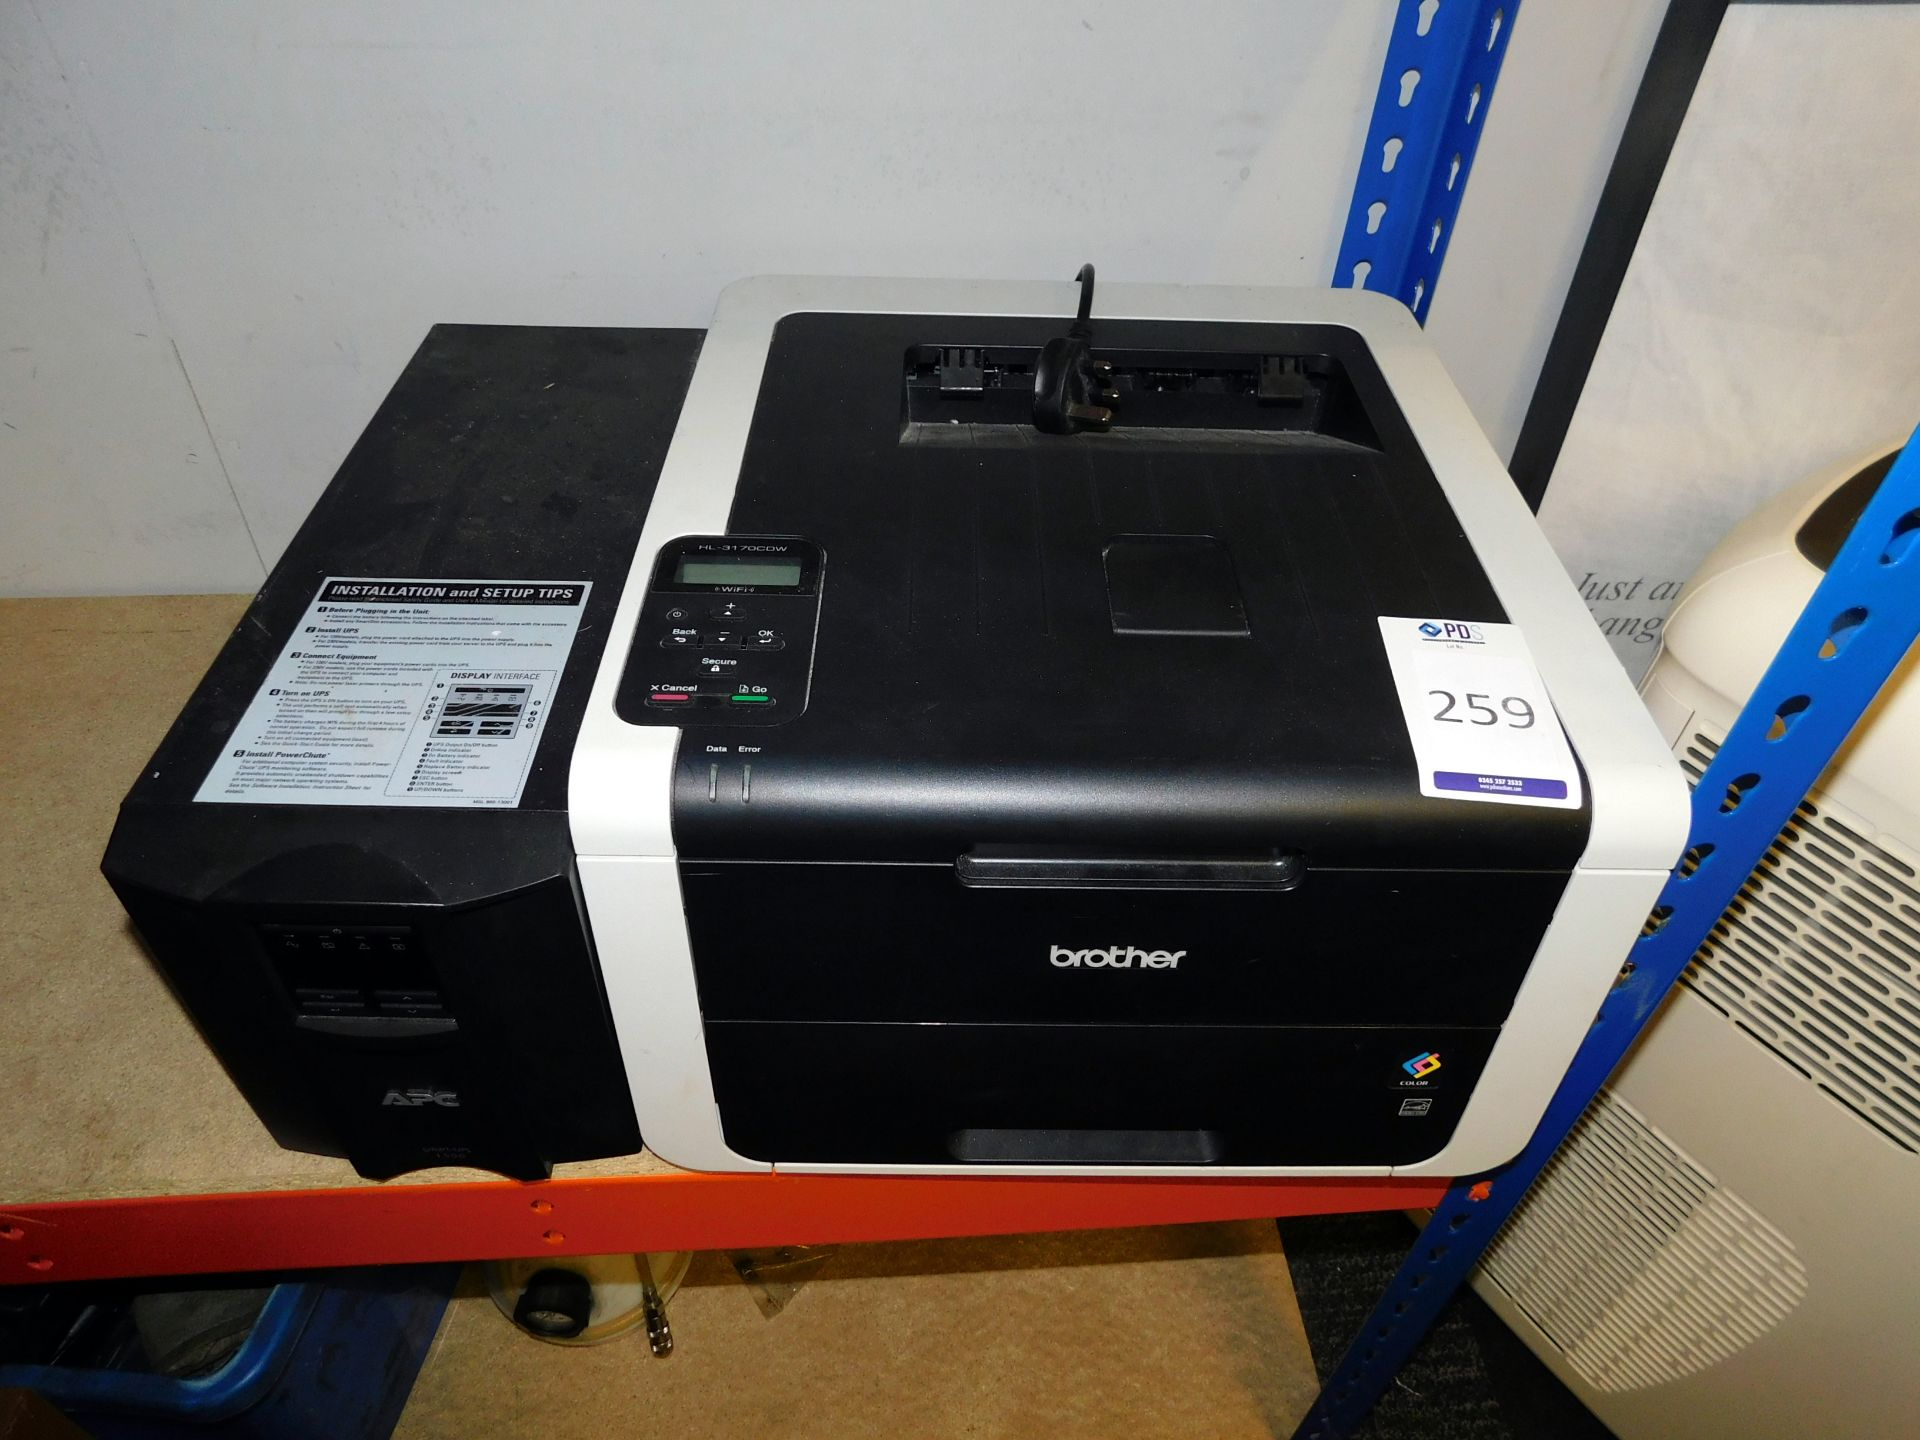 Los 259 - Brother HL-3170CDW Printer & APC Smart-UPS 1500 (Located Upminster – See General Notes for Full